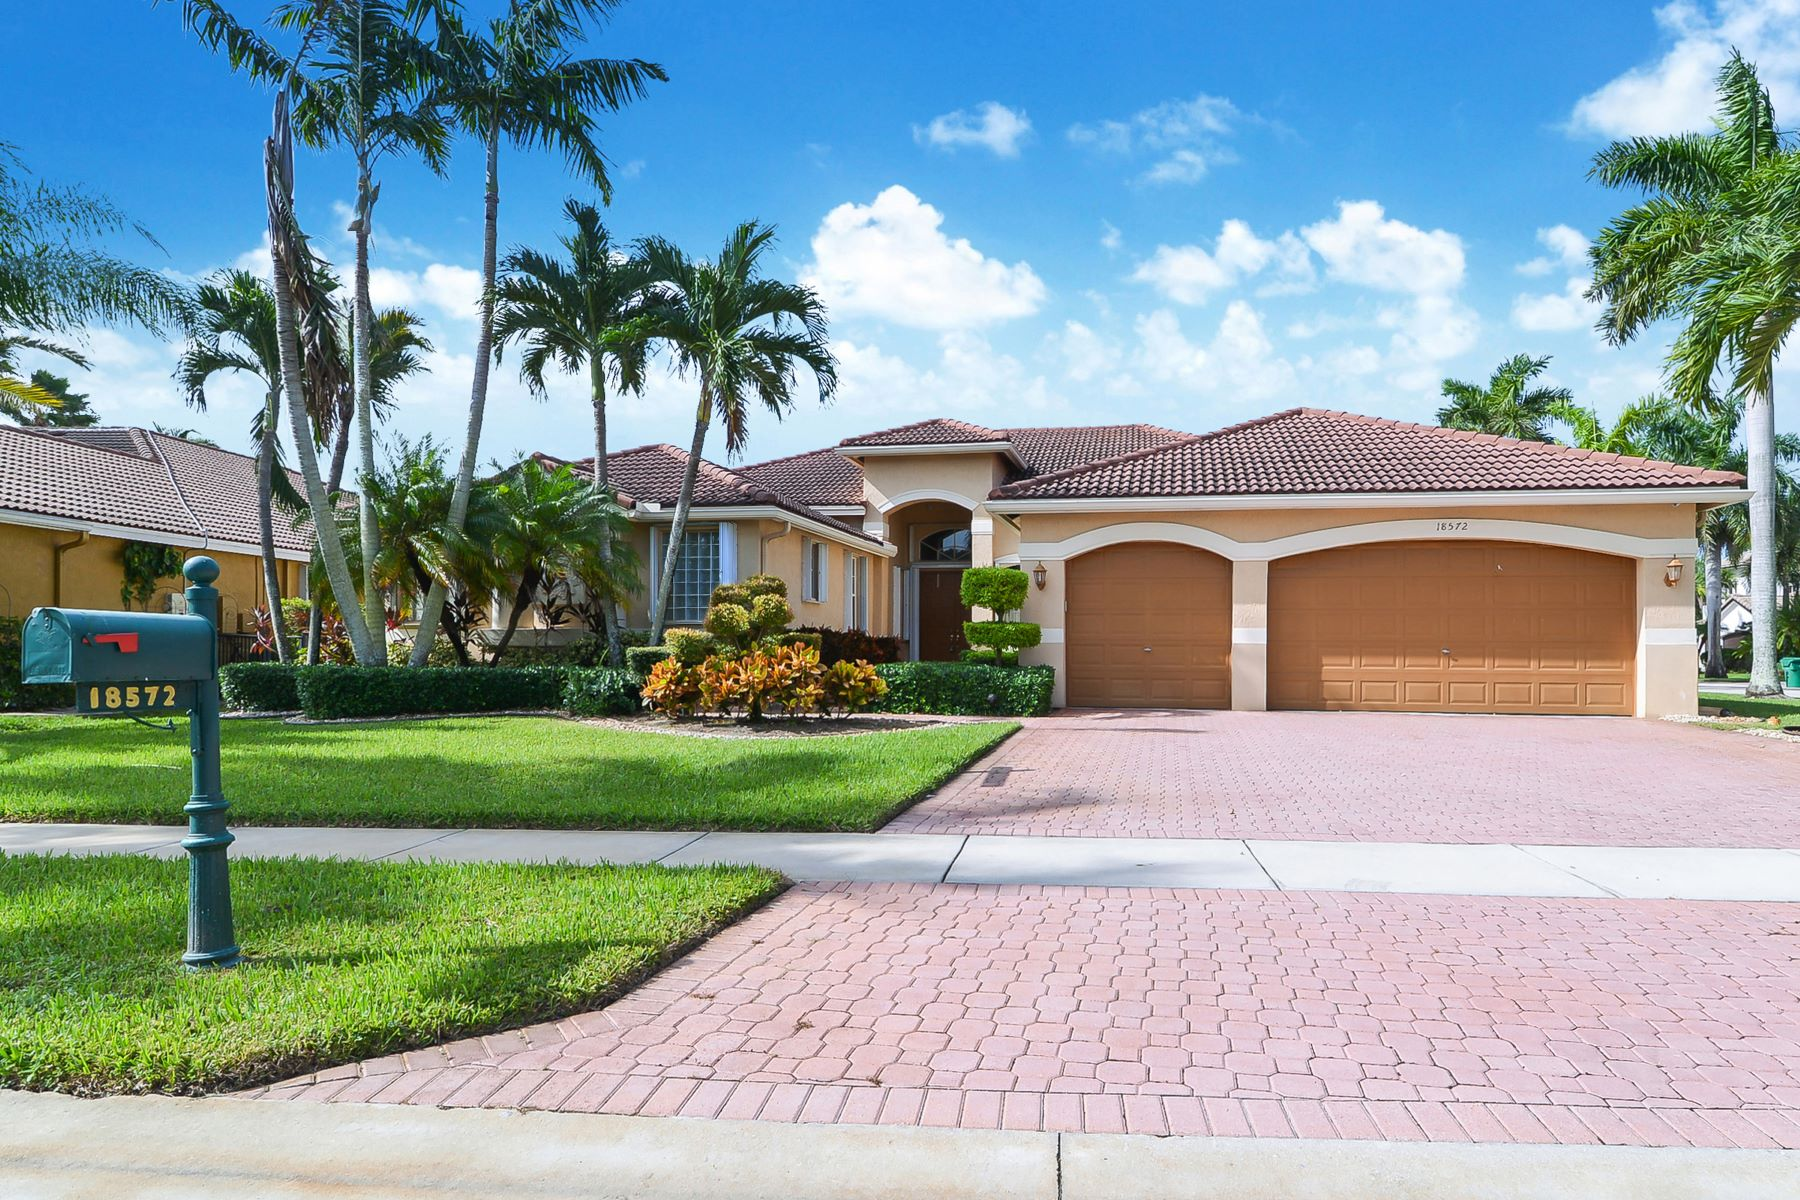 Single Family Homes for Sale at Miramar, Florida 33029 United States